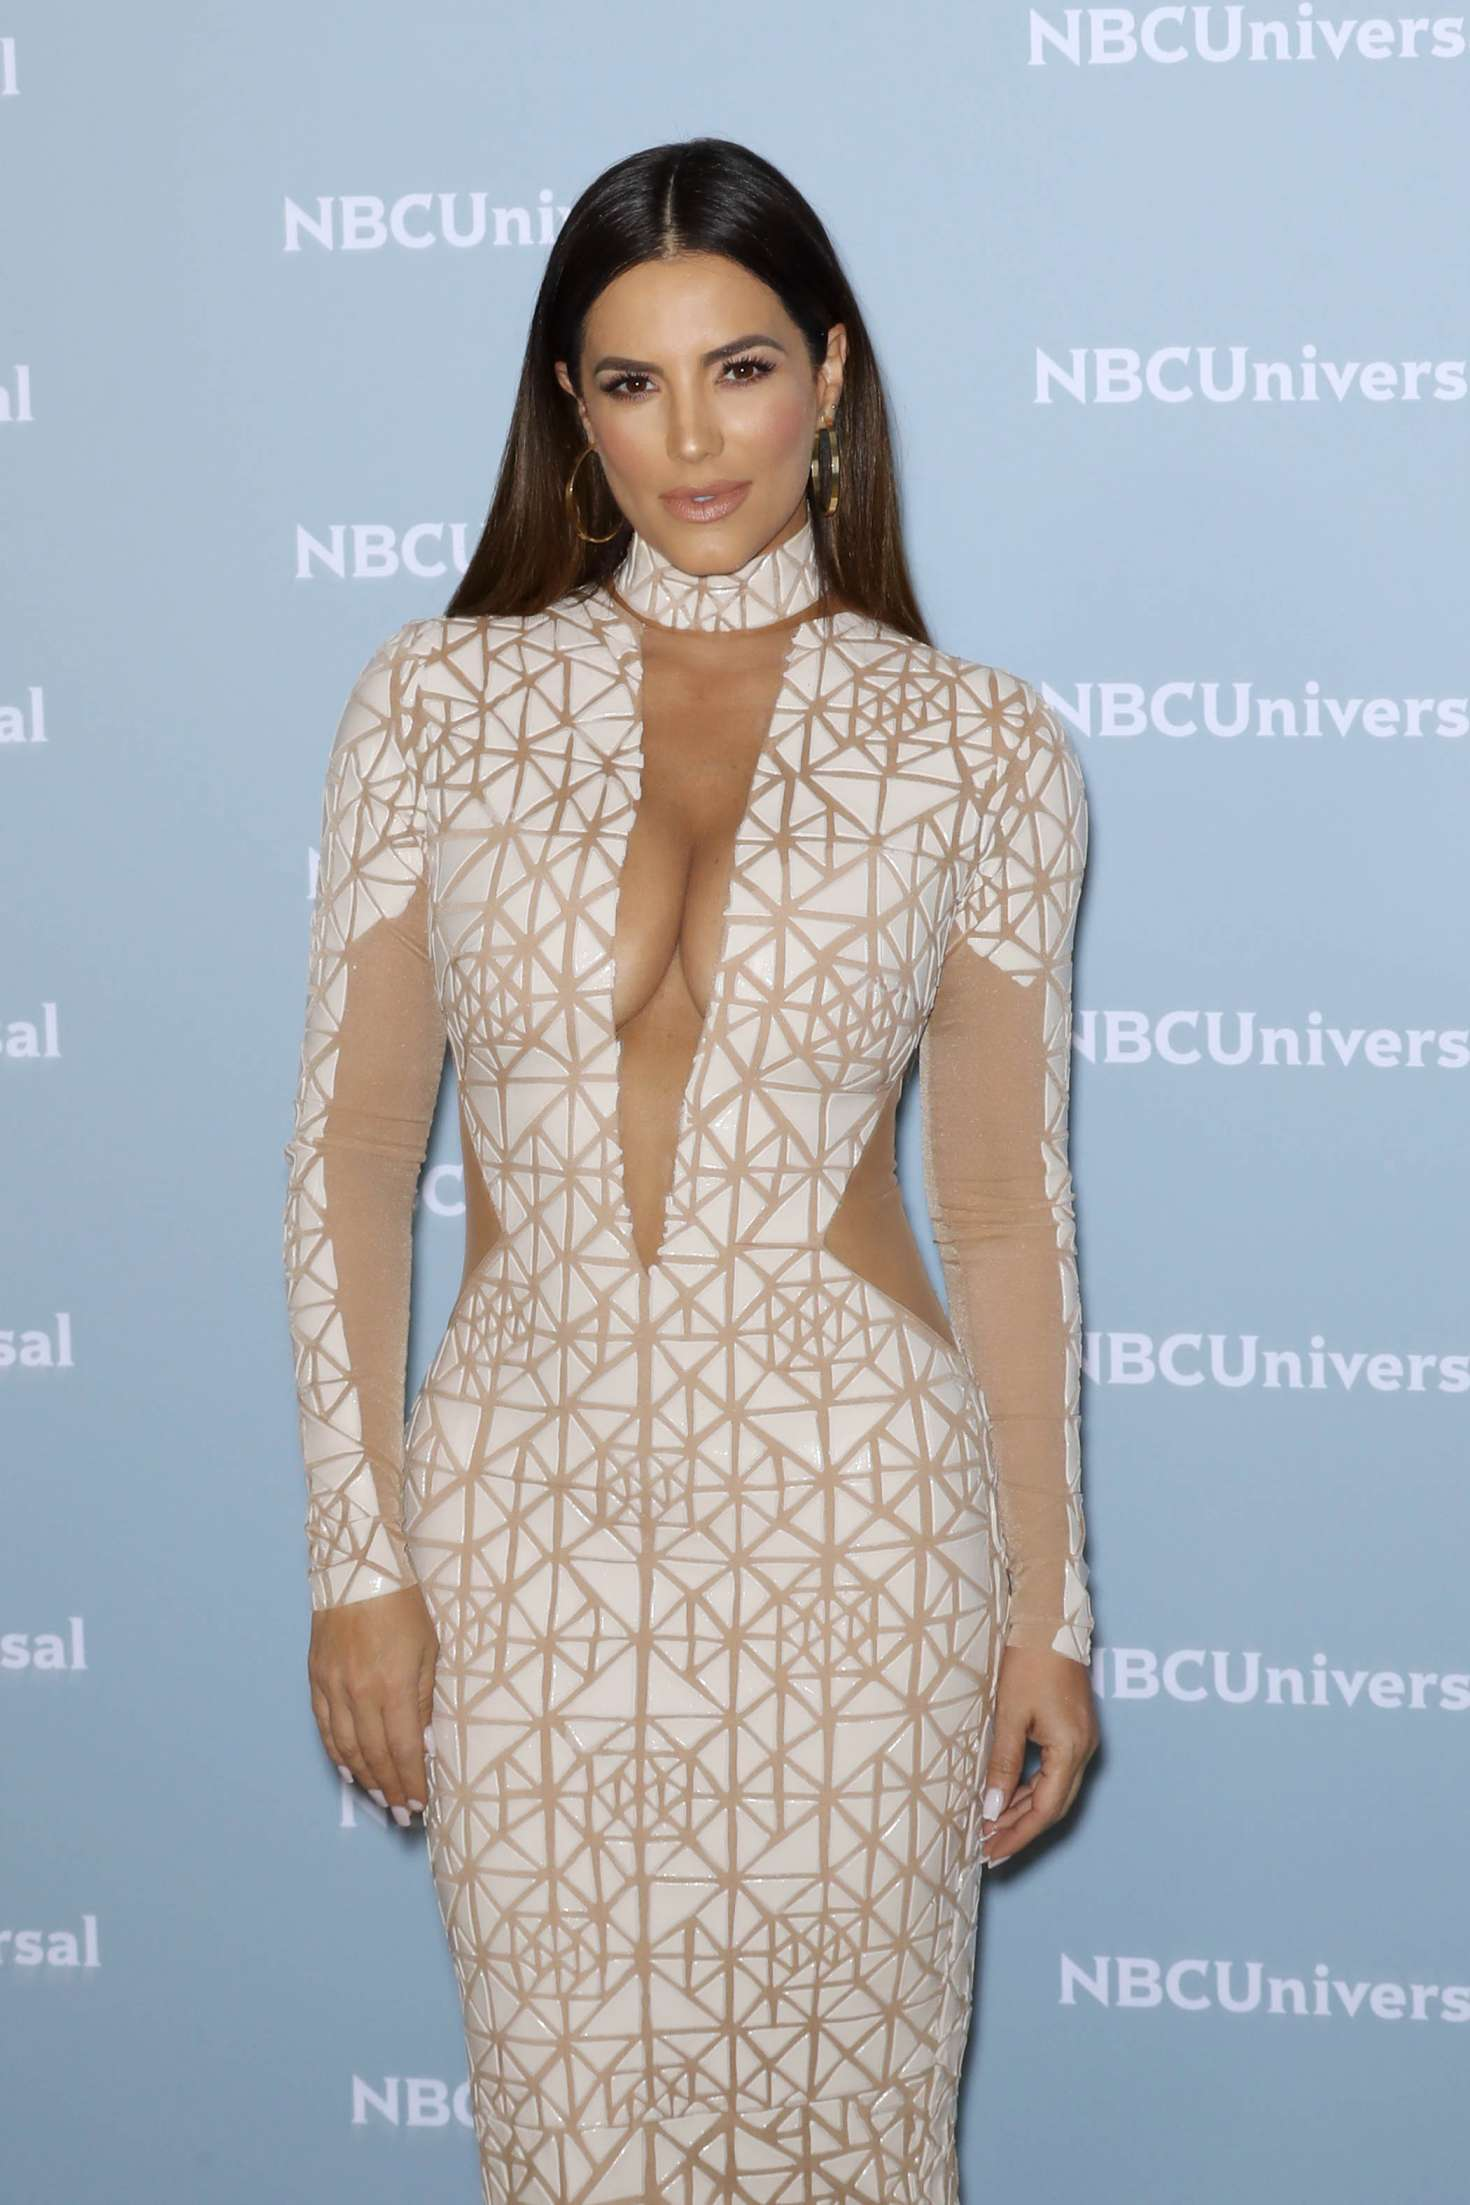 Gaby Espino - 2018 NBCUniversal Upfront Presentation in NYC